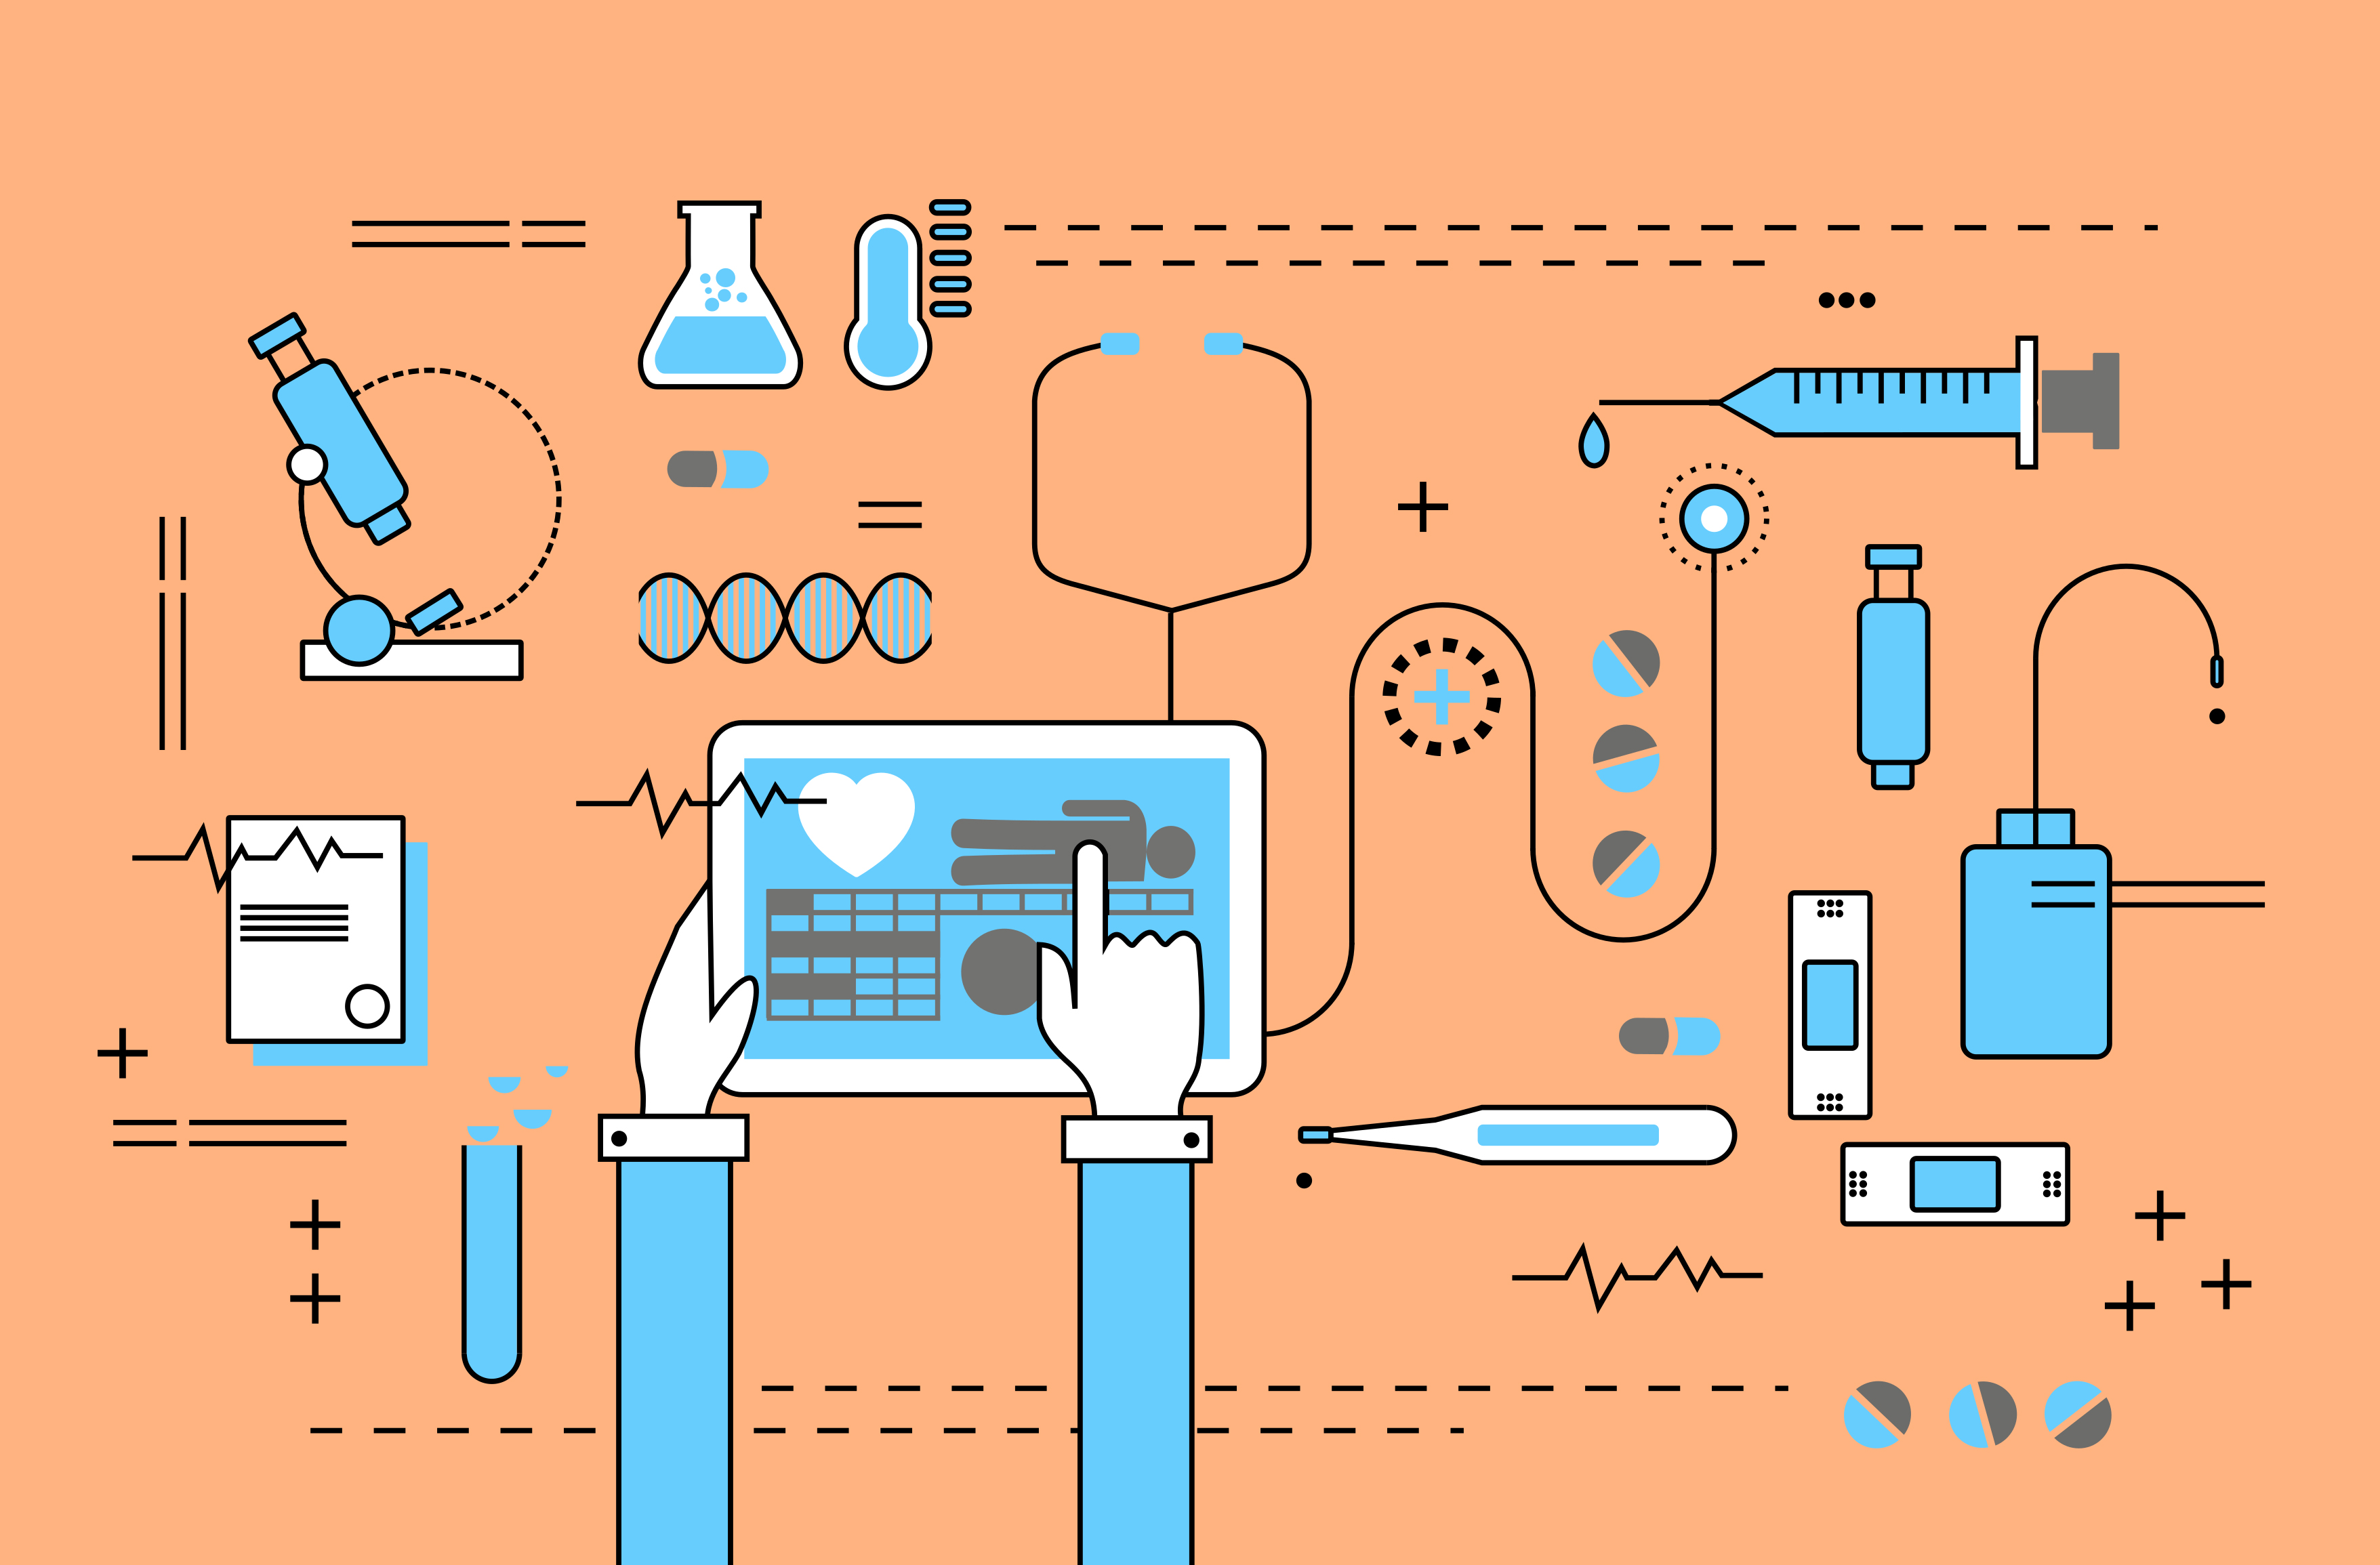 Medicine and Healthcare with Medical Devices - Flat Line Design